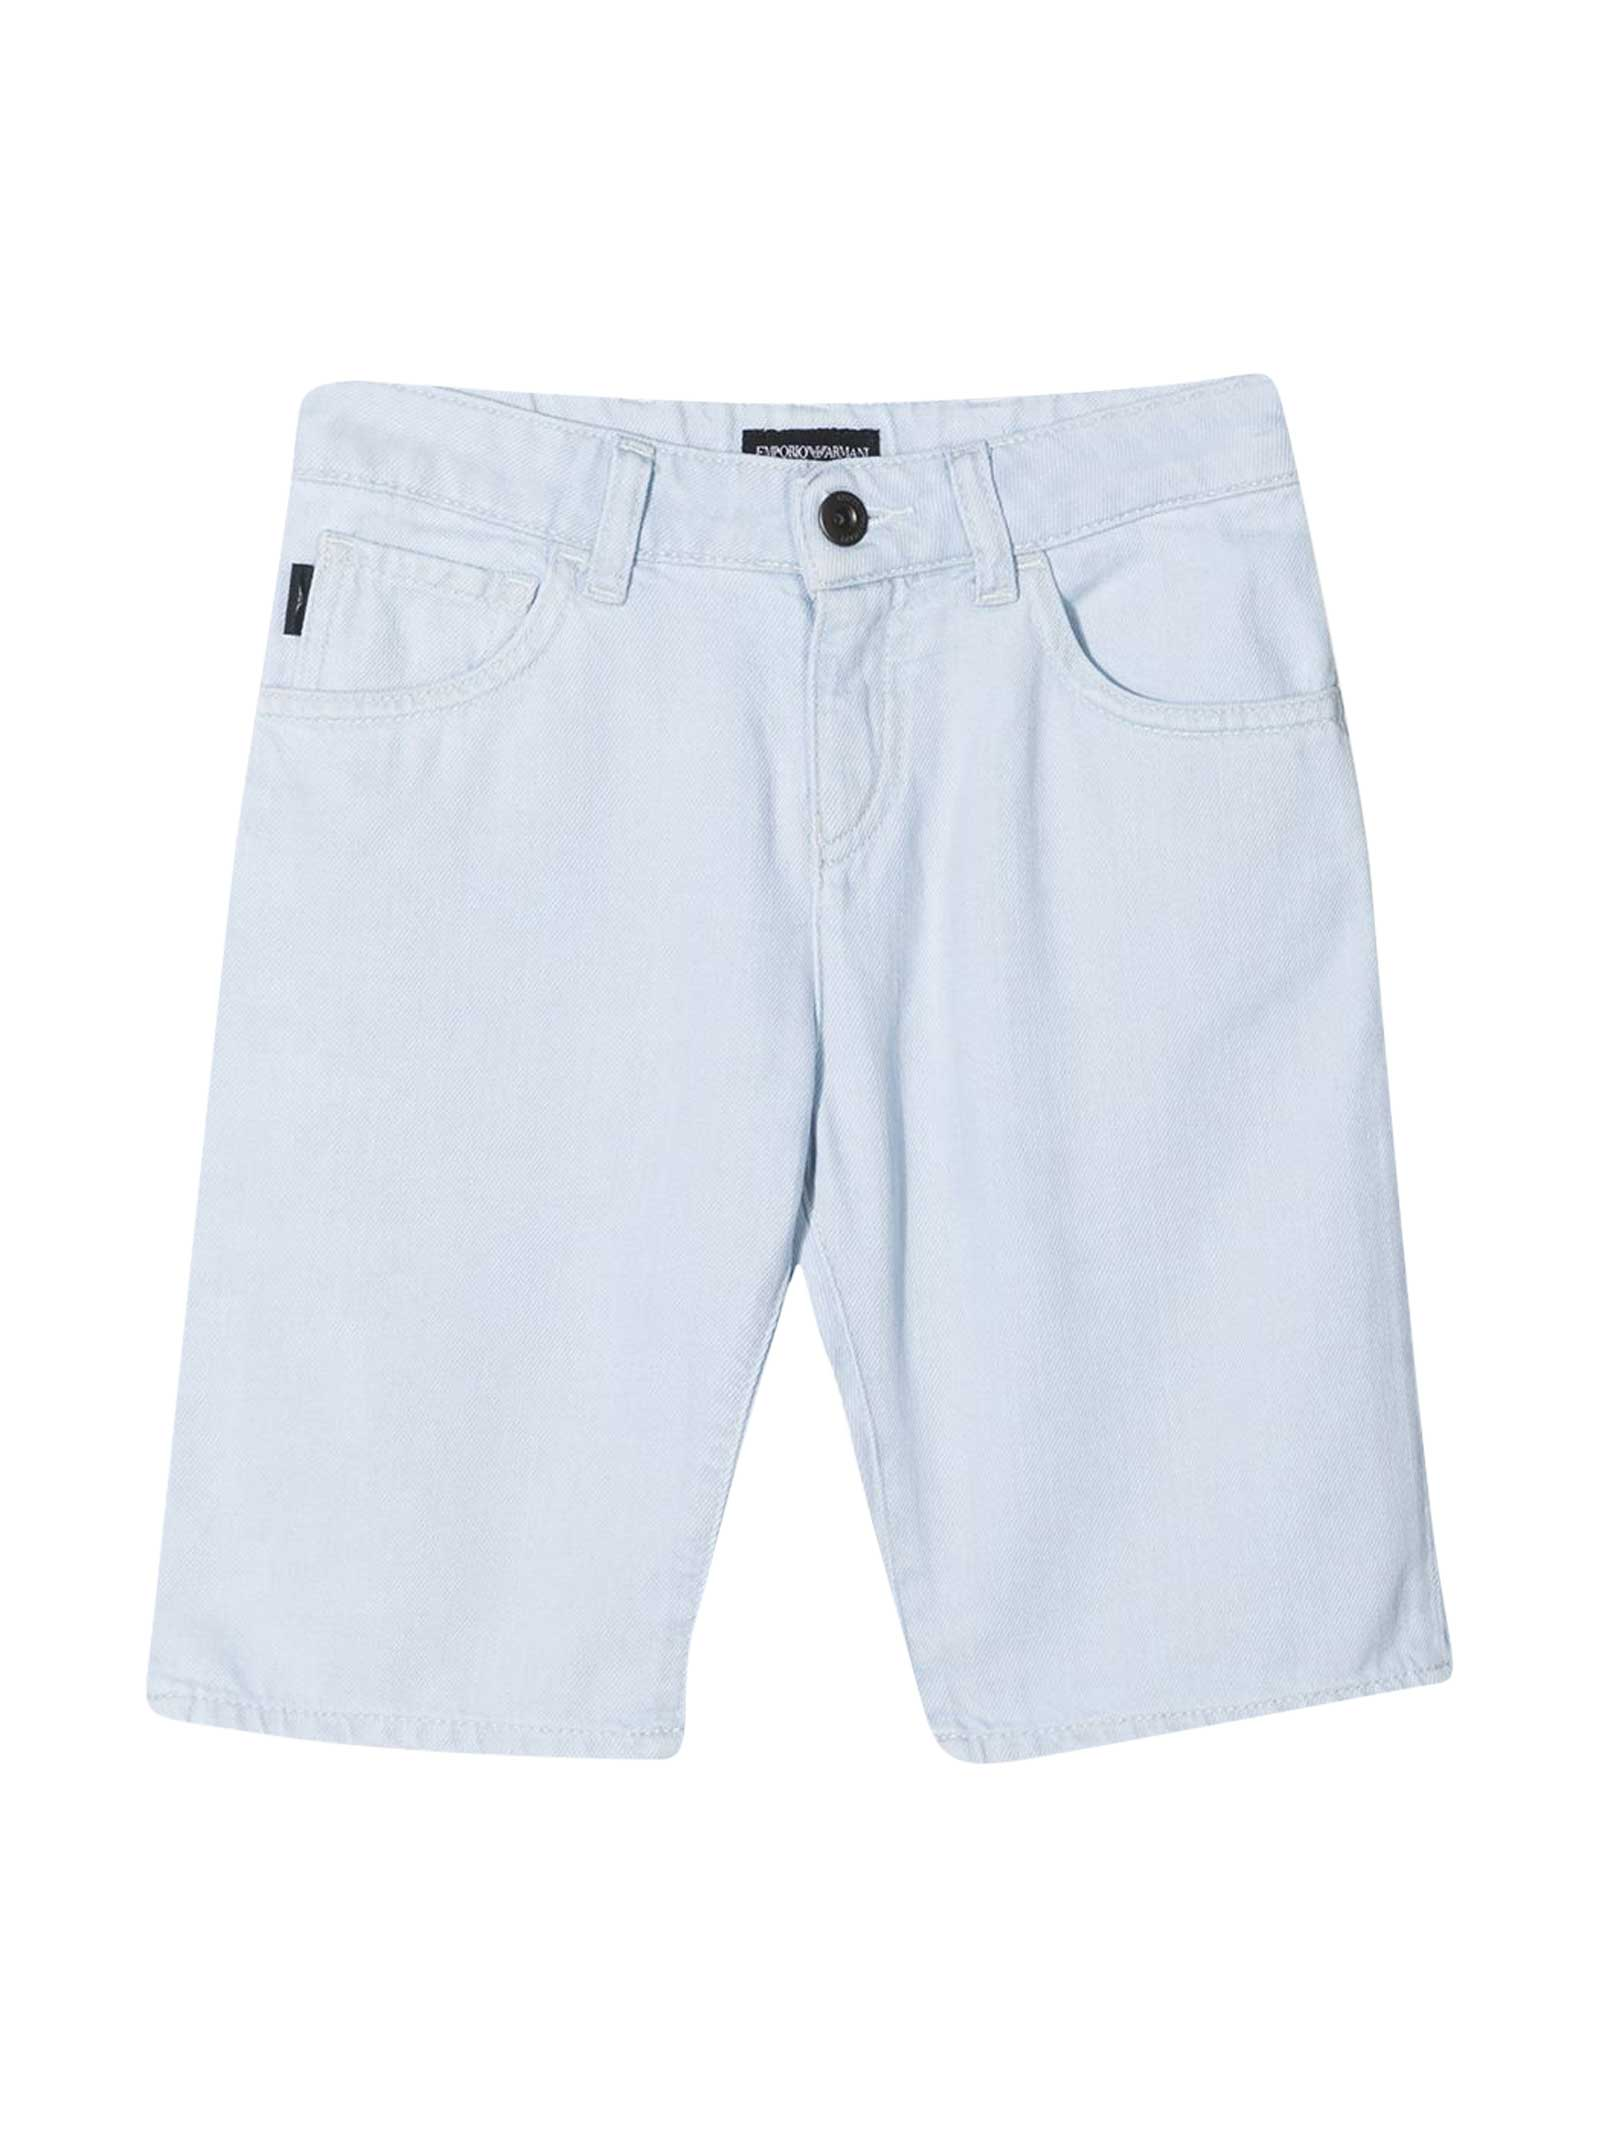 Emporio Armani Light Denim Shorts